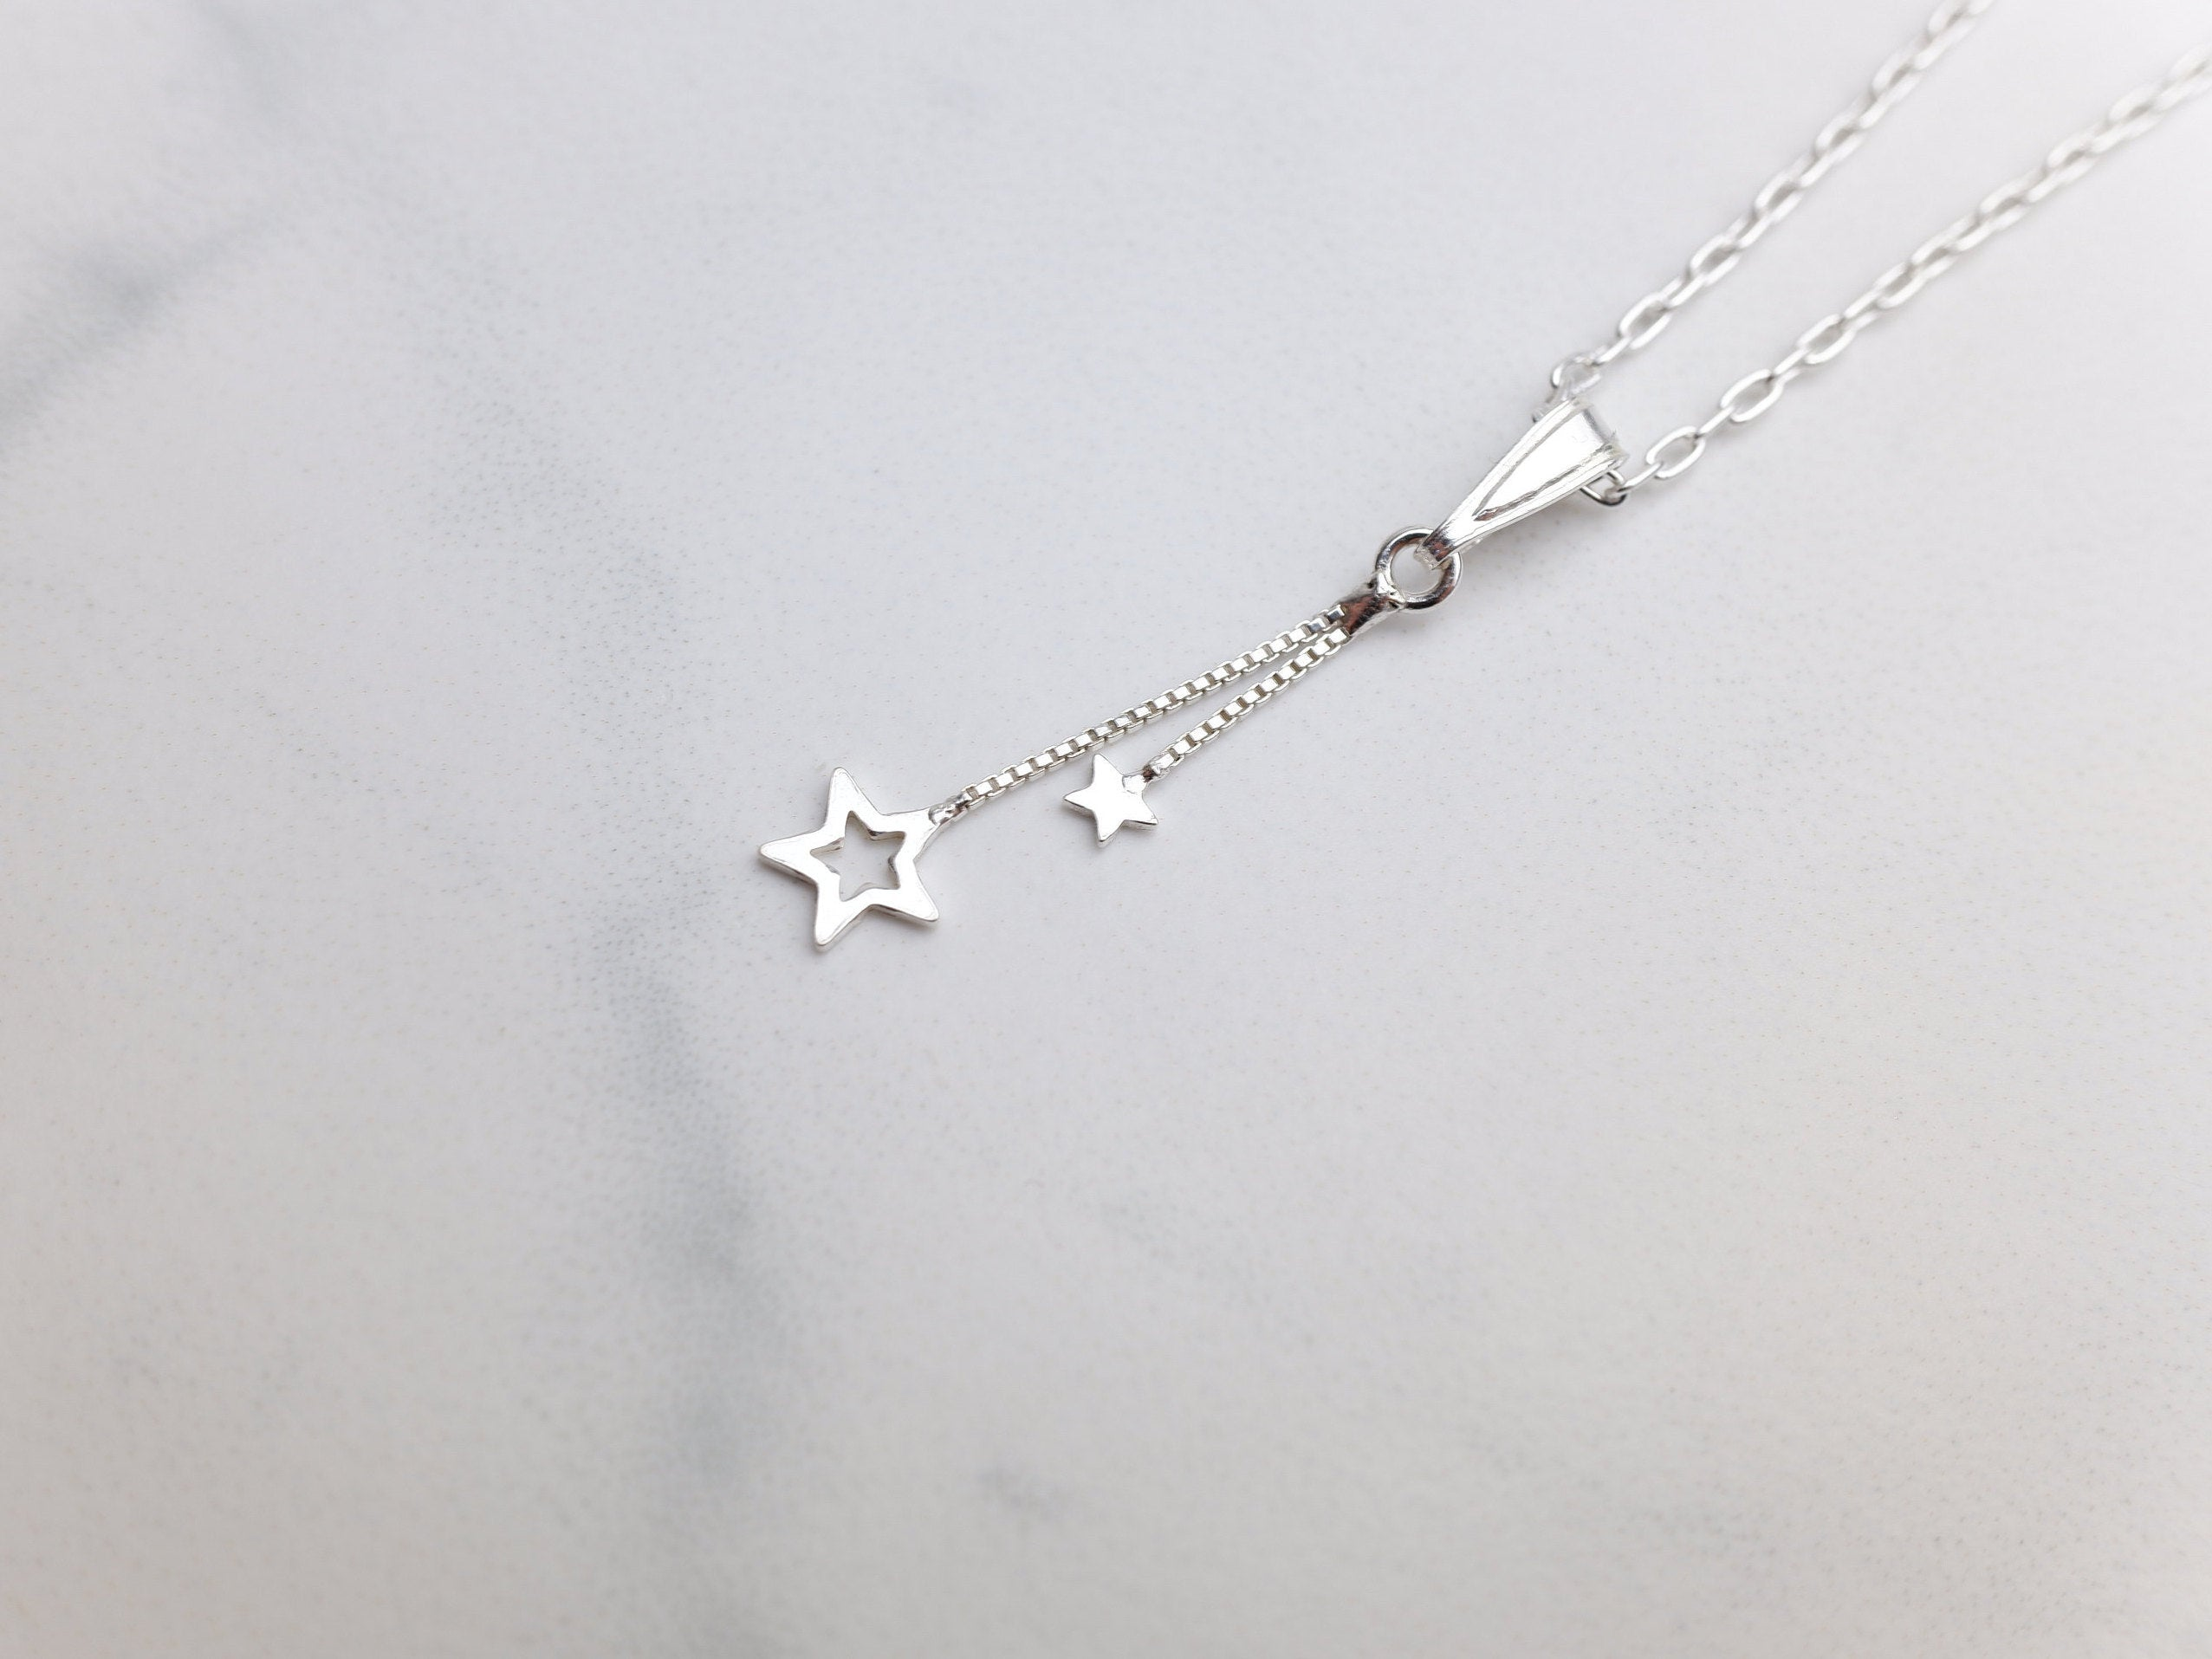 Sterling Silver Double Star Charm Pendant Necklace - Sterling Silver Cable Chain - Christmas Jewellery